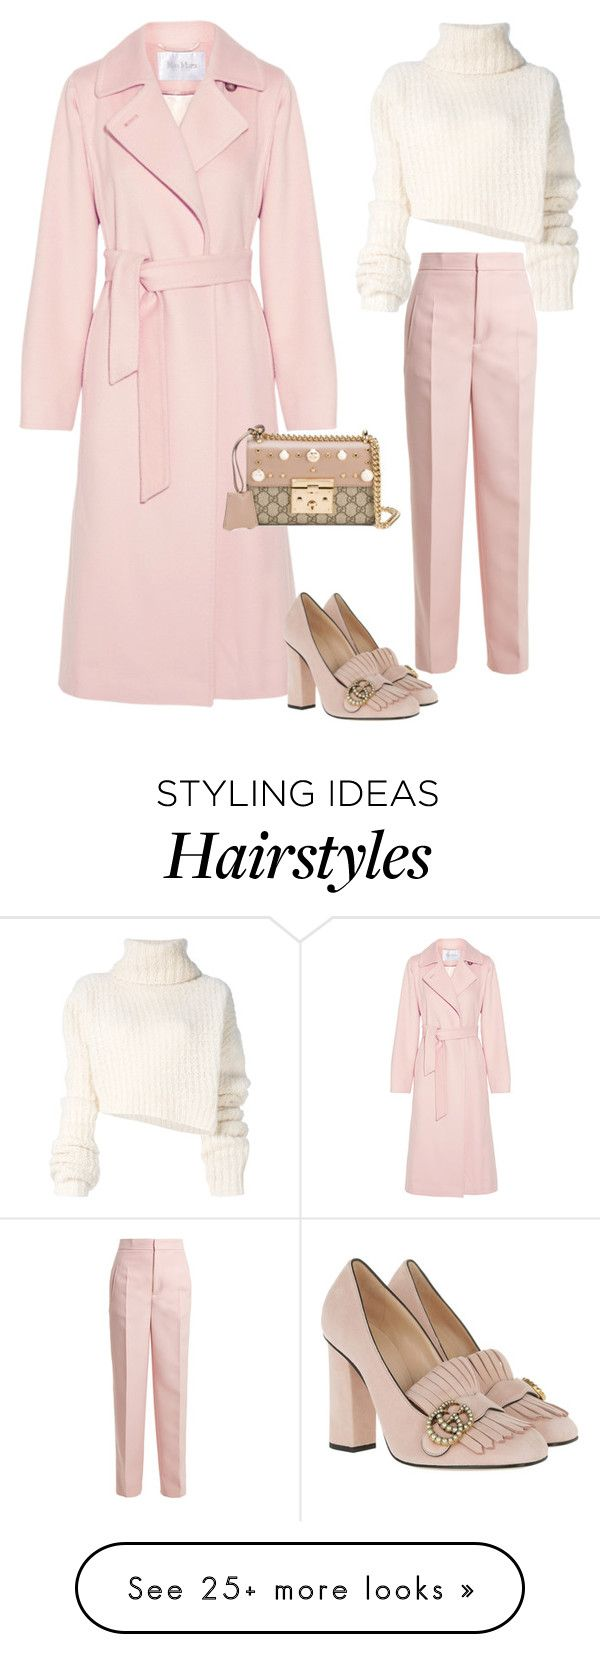 """""""Winter Pastels"""" by molauren on Polyvore featuring MaxMara, Joseph, Ann Demeulemeester and Gucci"""